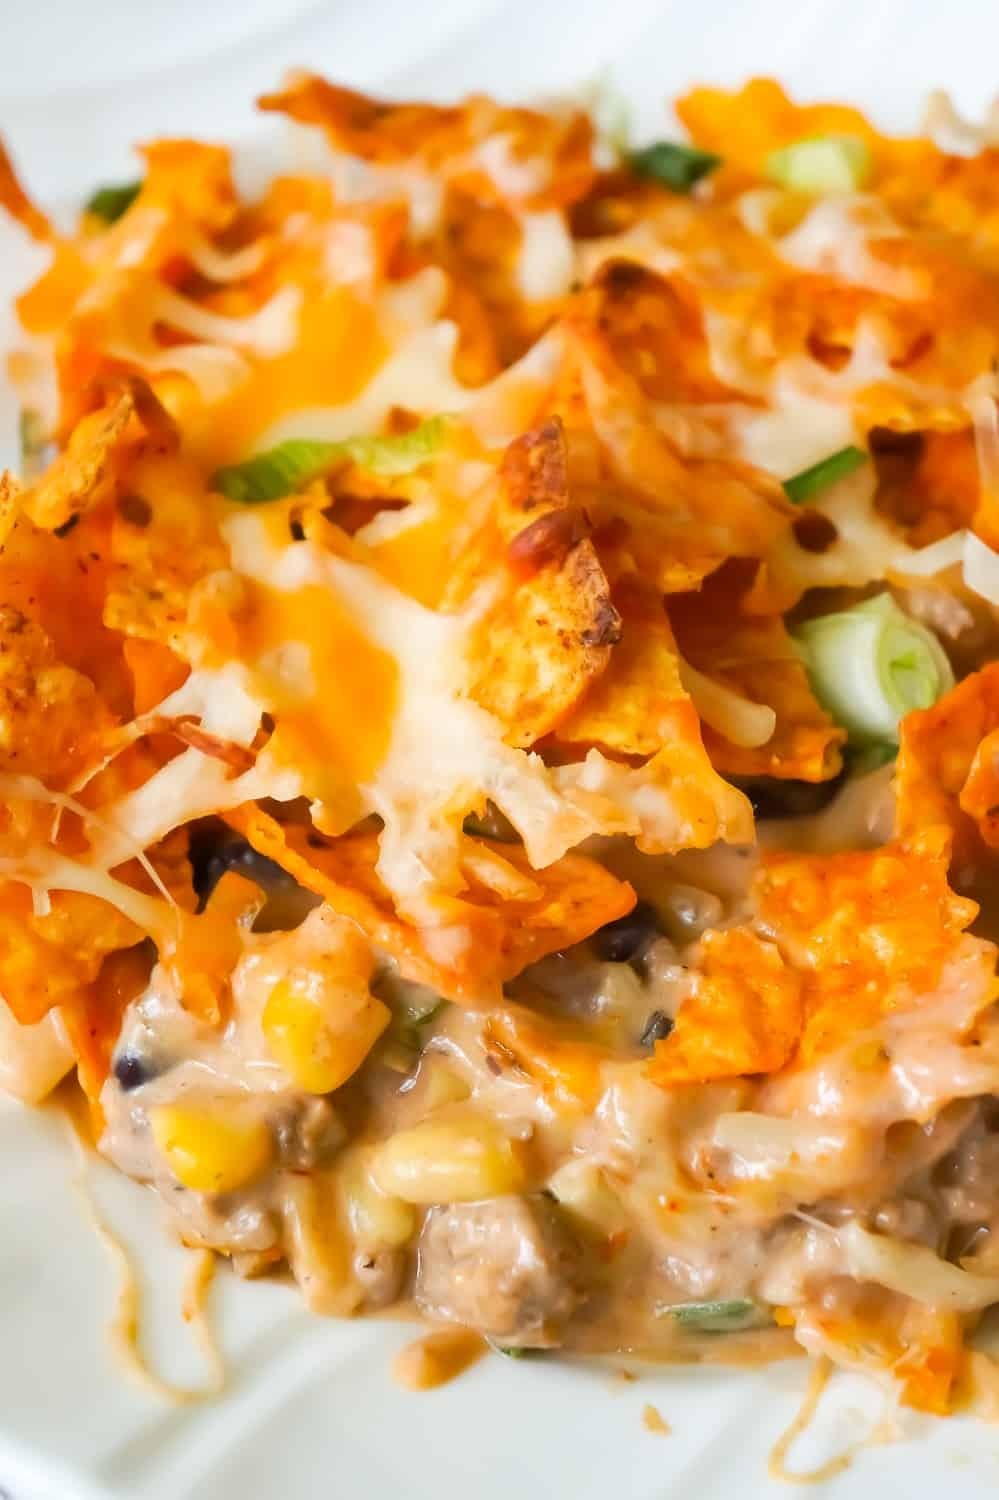 Doritos Casserole with Ground Beef is an easy dinner recipe the whole family will love. This hearty casserole is loaded with ground beef, cream cheese, corn, black beans, shredded cheese and topped with crumbled Doritos.